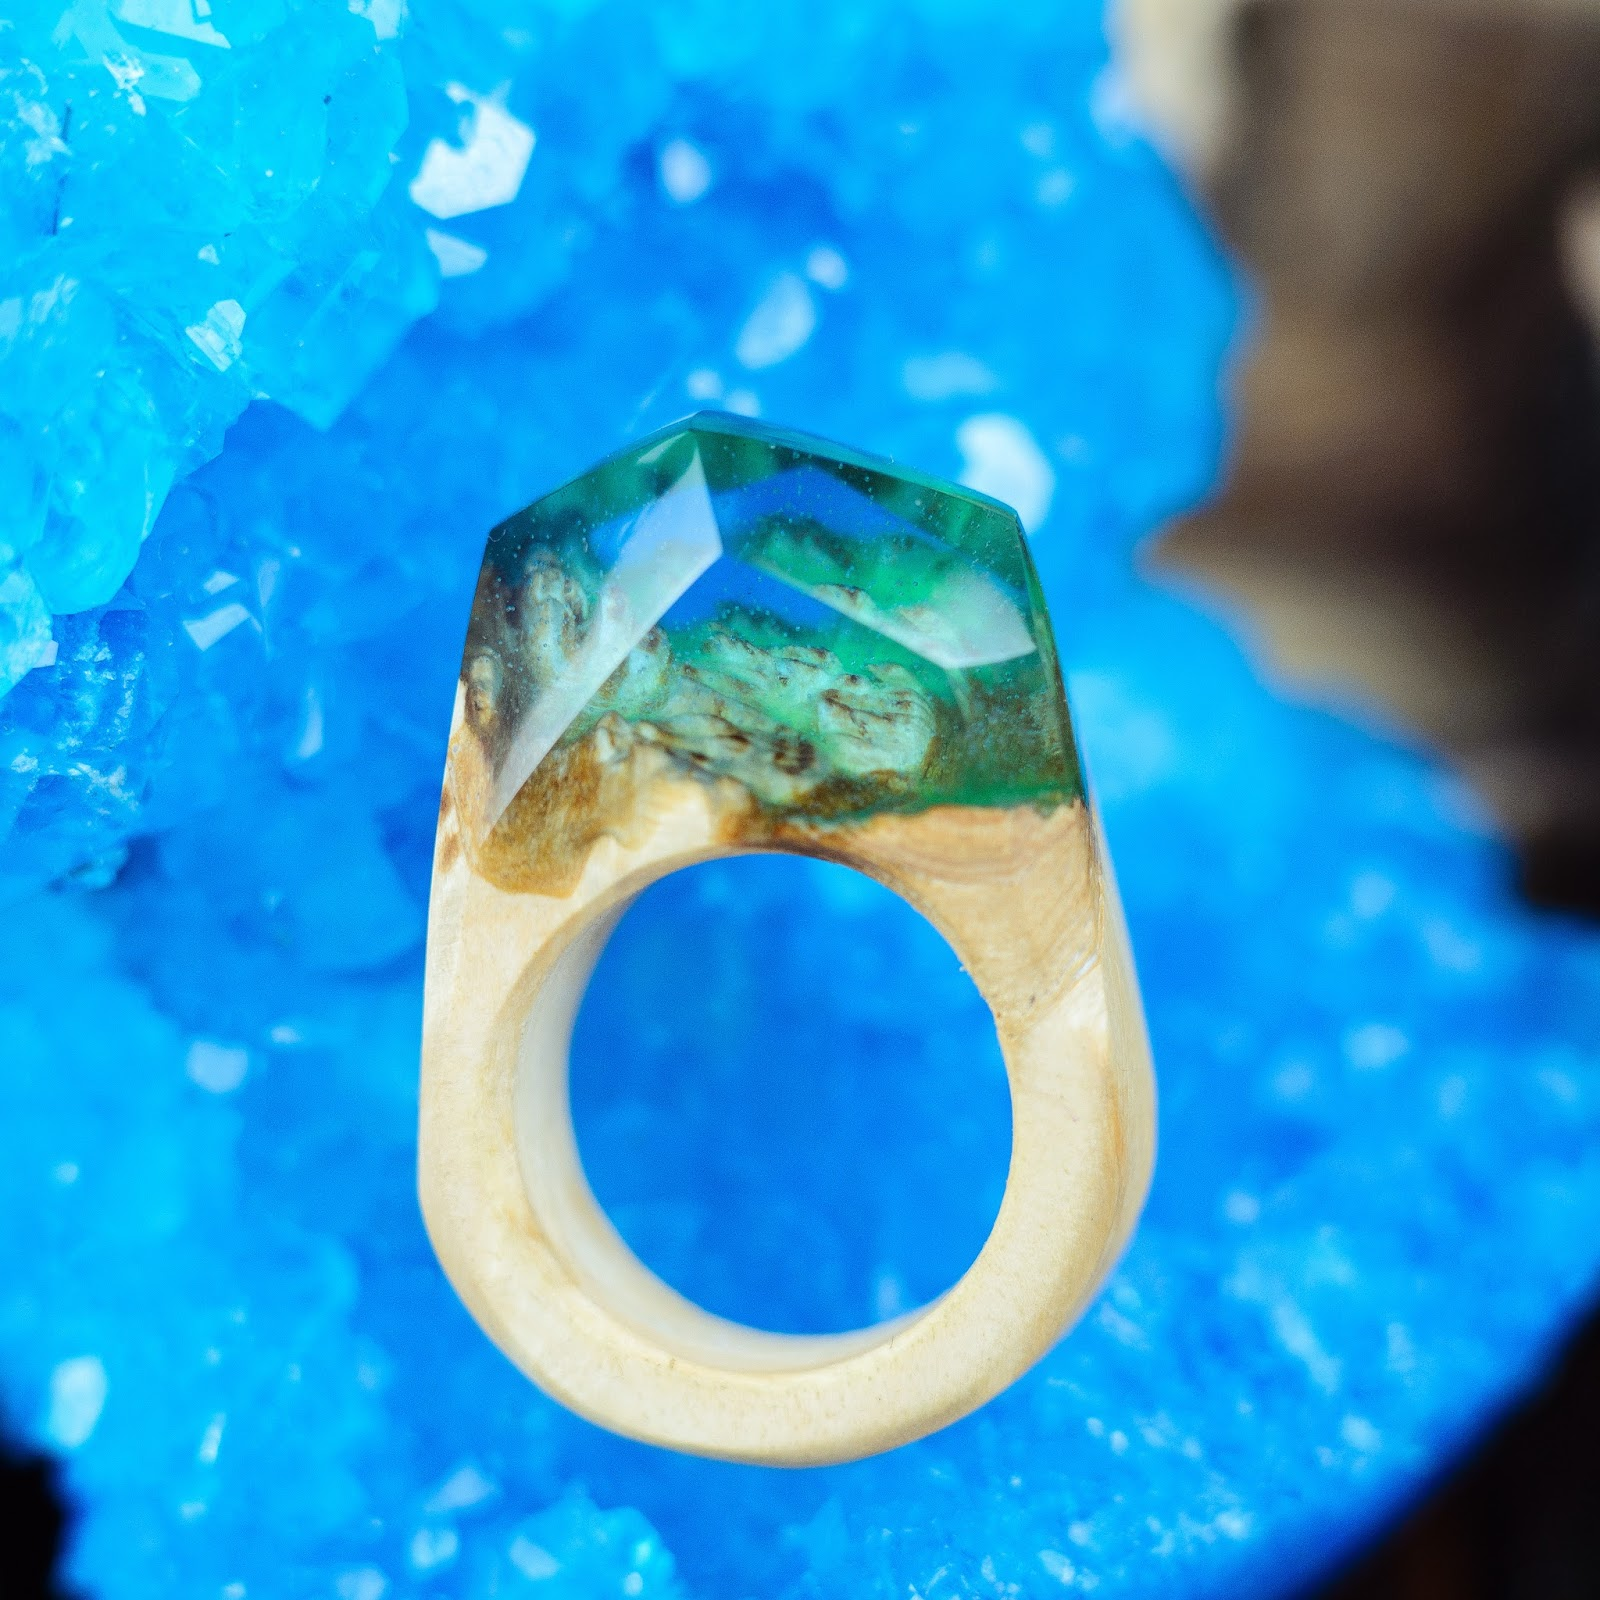 Wood Resin Ring Wooden Resin Ring Handmade Nature Jewelry